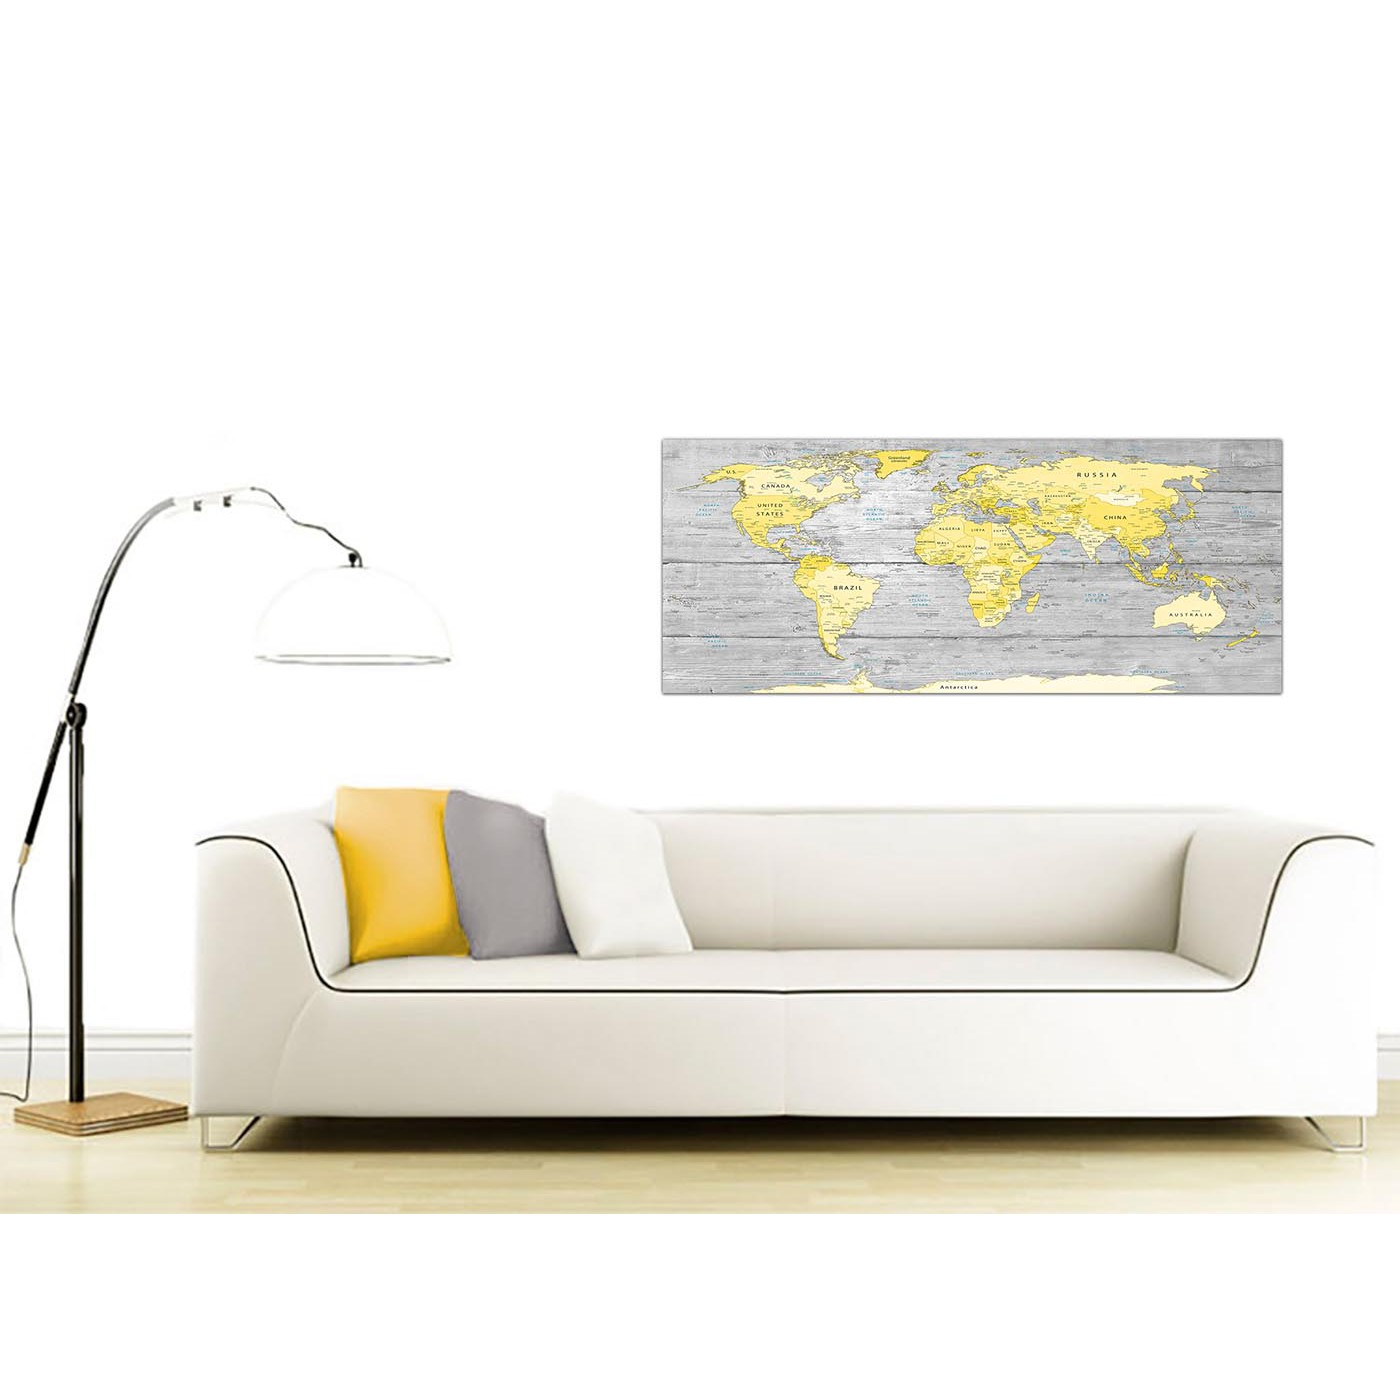 Large yellow grey map of world atlas canvas wall art print maps display gallery item 3 contemporary yellow grey large yellow grey map of world atlas canvas wall art print maps canvas display gallery item 4 gumiabroncs Images